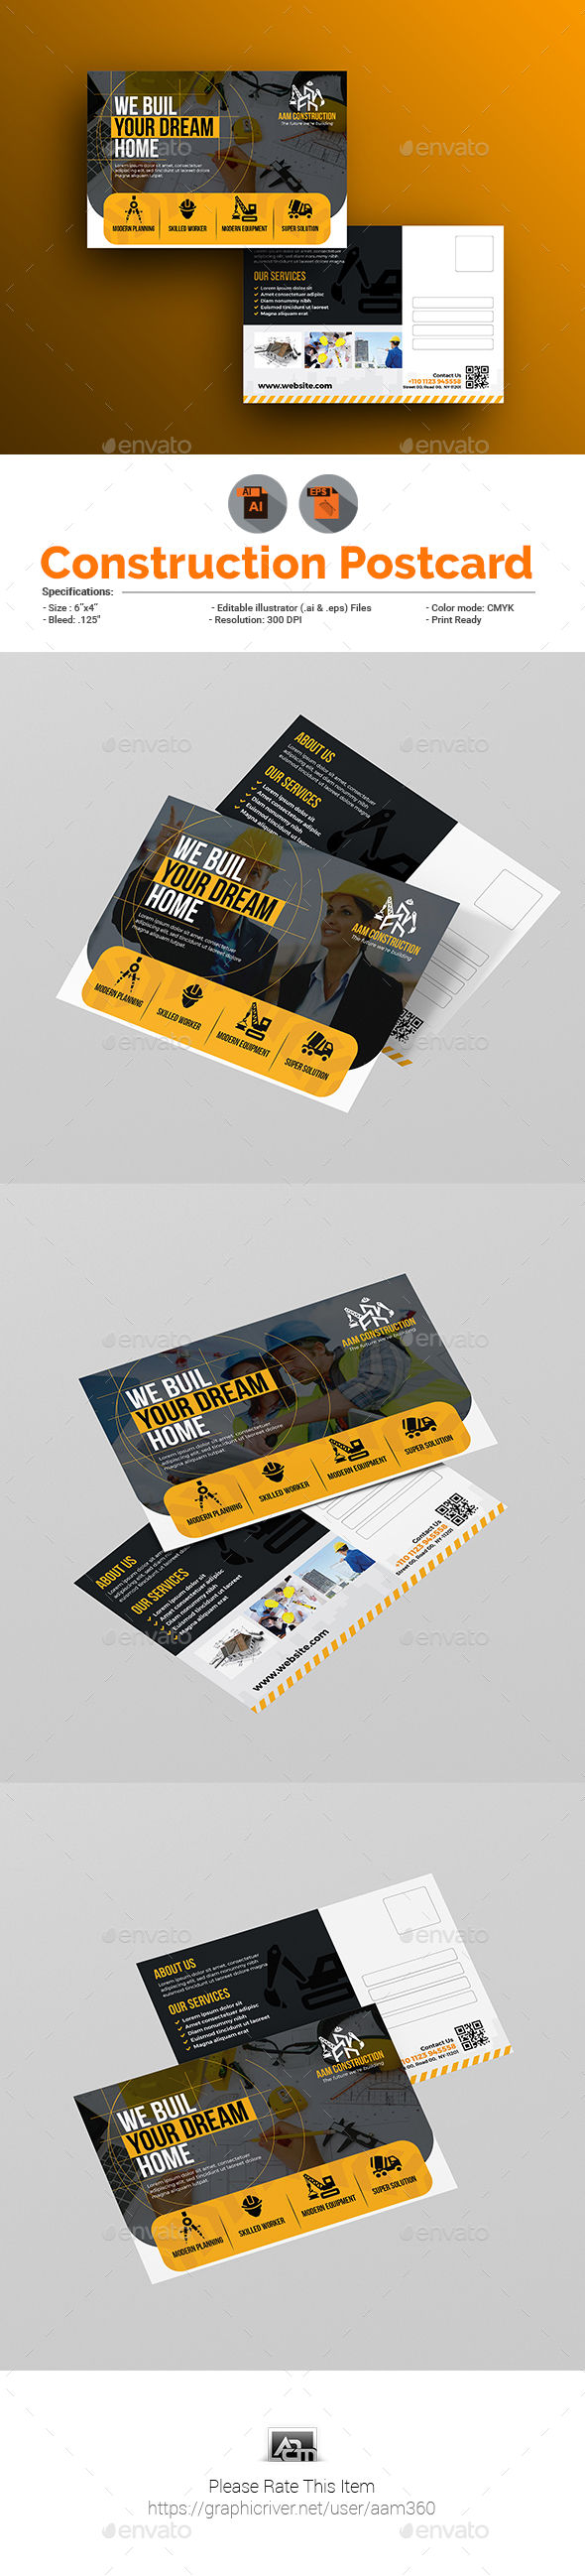 Construction Firm Postcard Template by aam360 | GraphicRiver